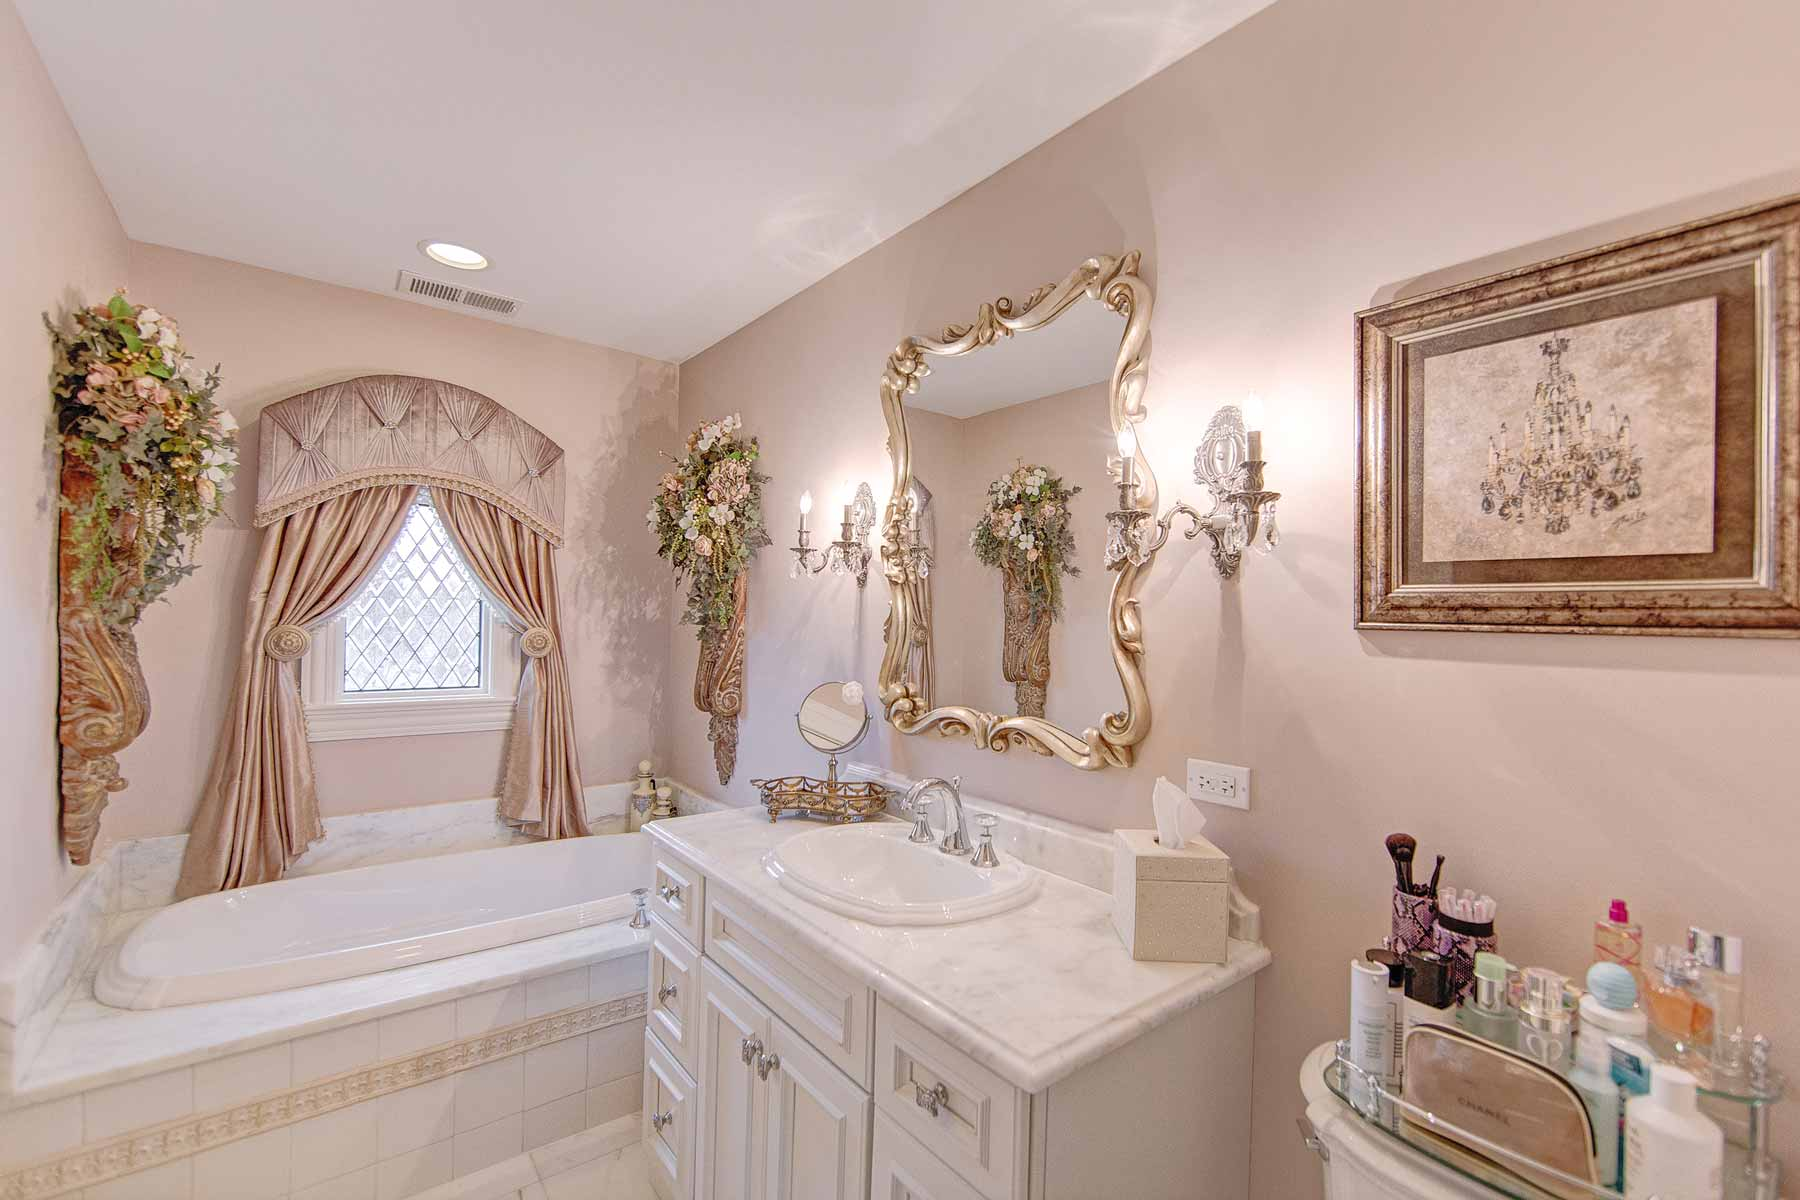 Girls luxury bathroom interior design for Bathroom designs for girls